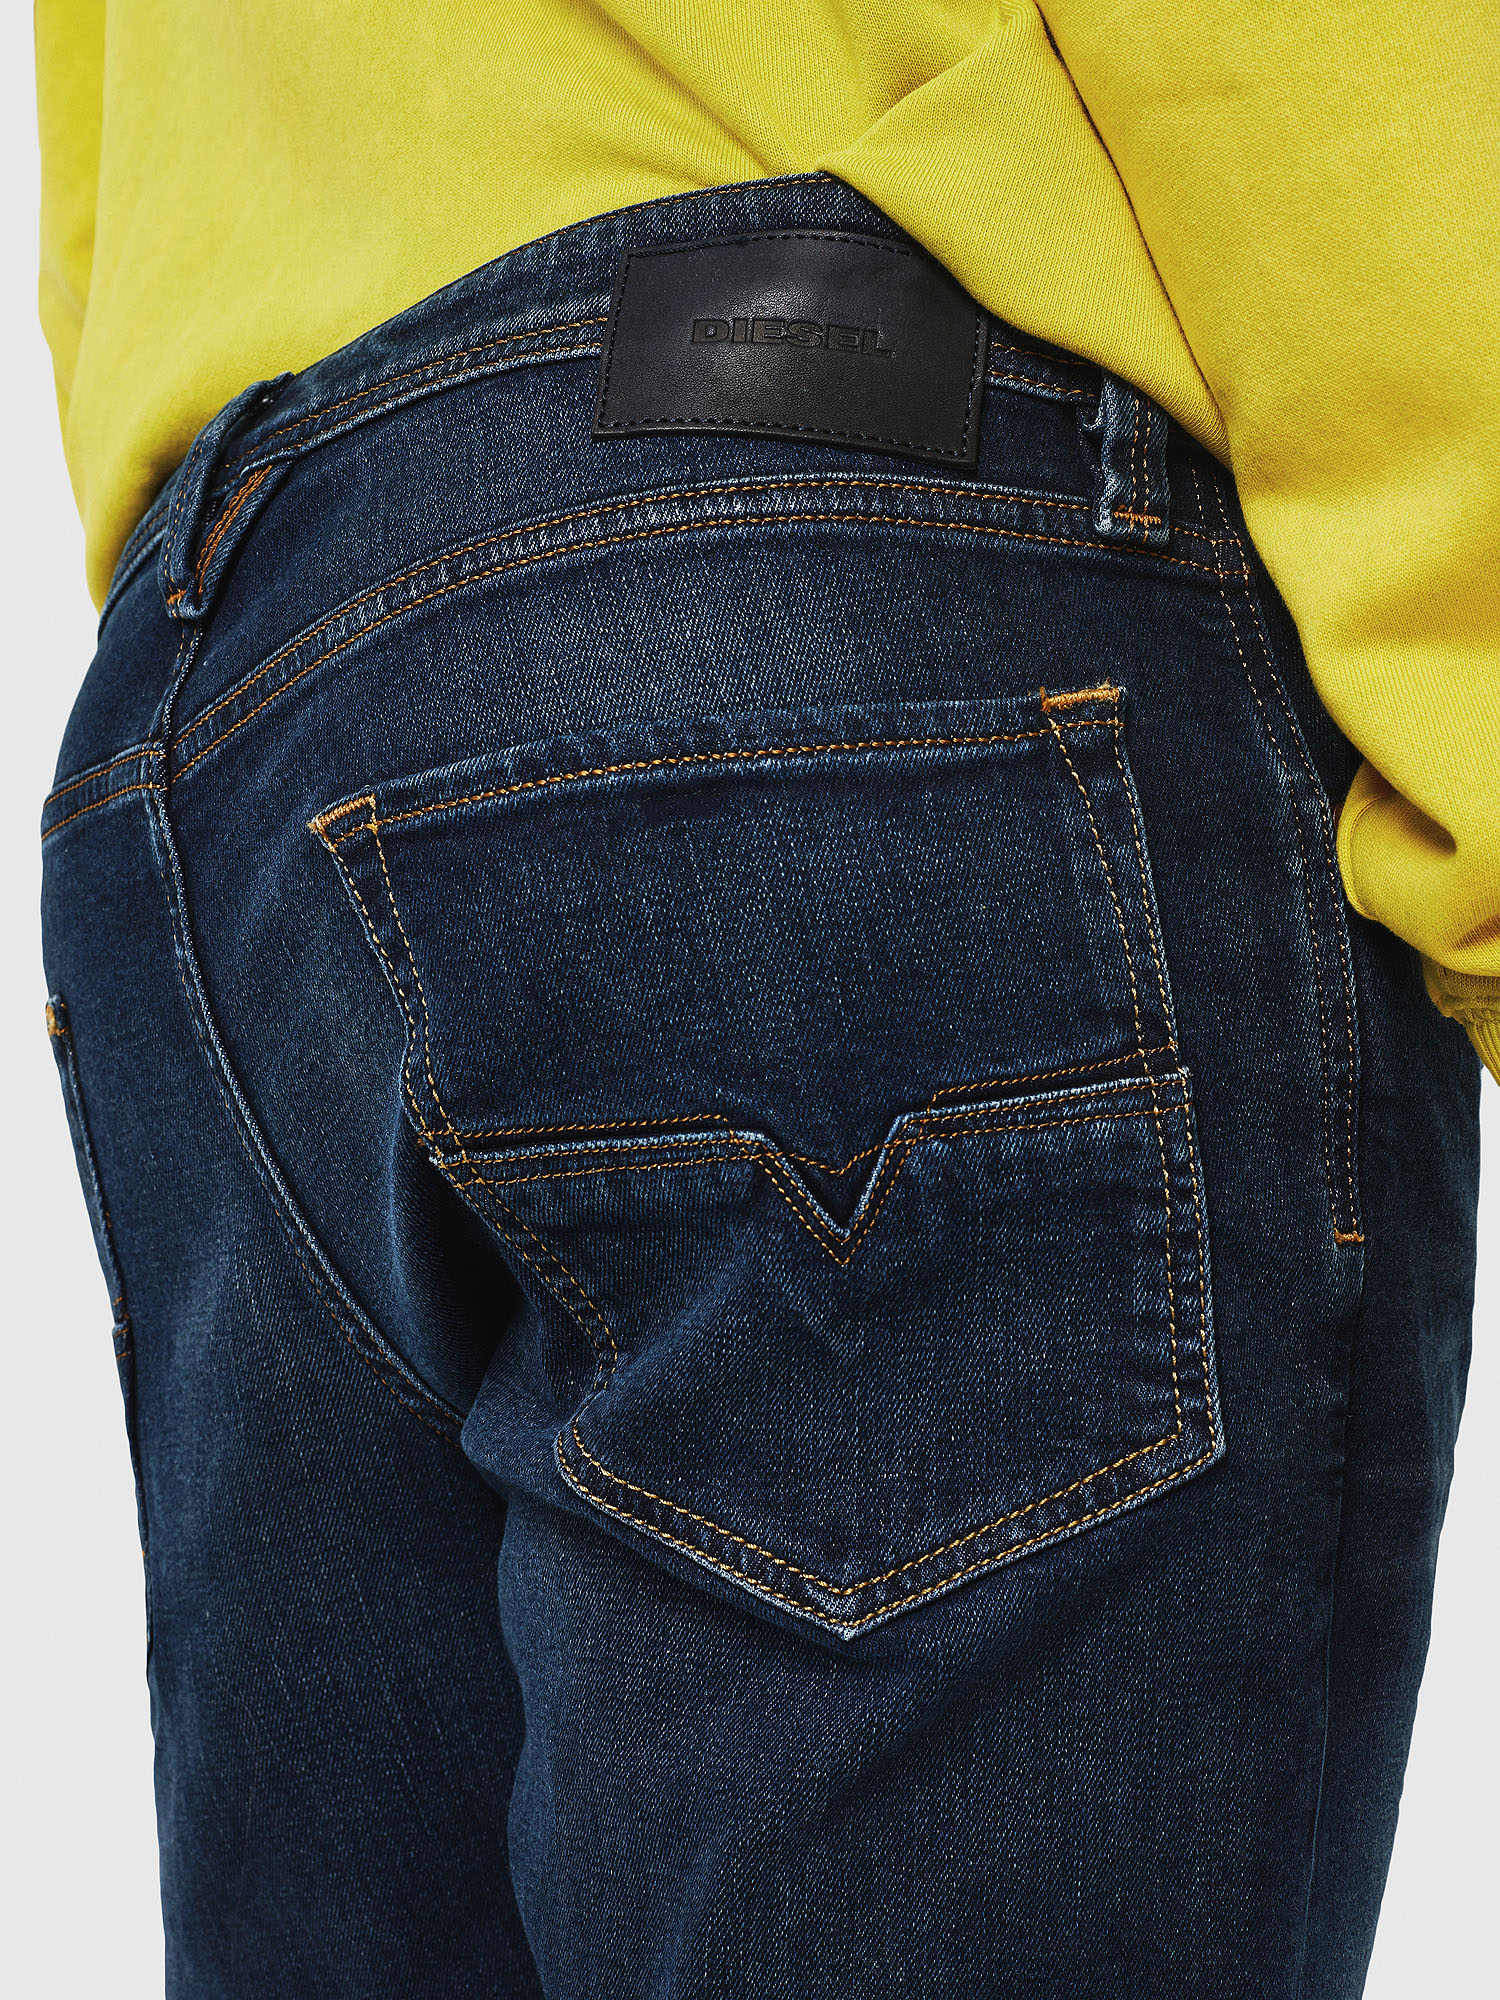 Diesel - Larkee-Beex 087AS,  - Jeans - Image 4